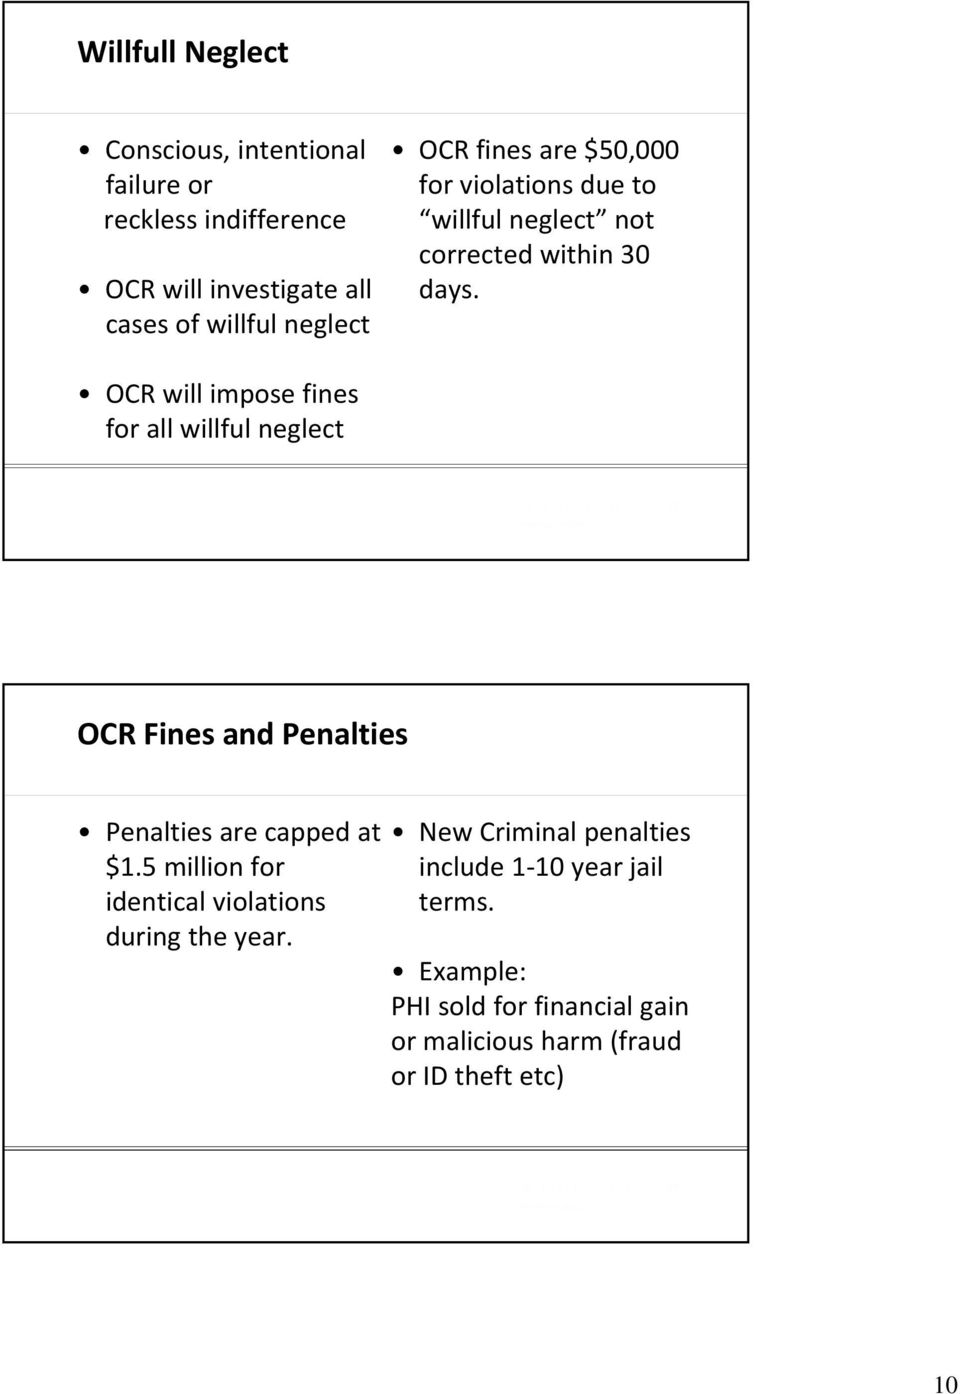 OCR will impose fines for all willful neglect OCR Fines and Penalties Penalties are capped at $1.